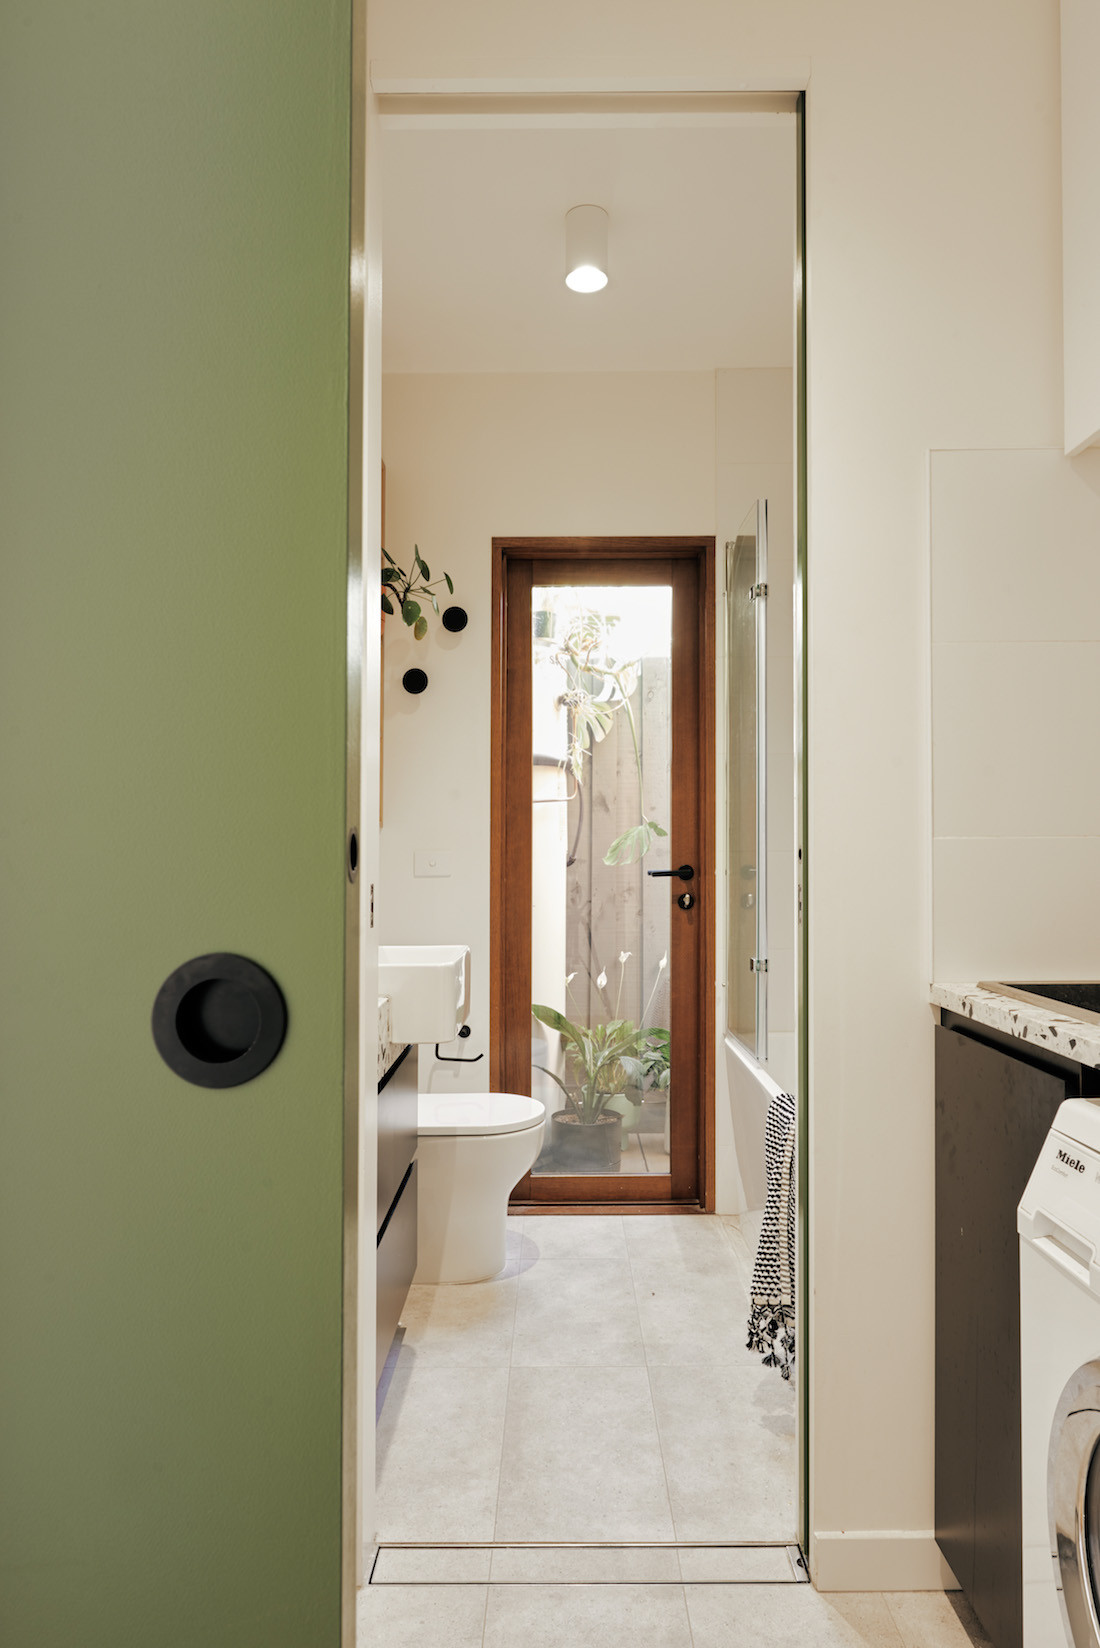 A Dulux coloured Asparagus Green sliding door between the Brunswick home's bathroom and laundry.